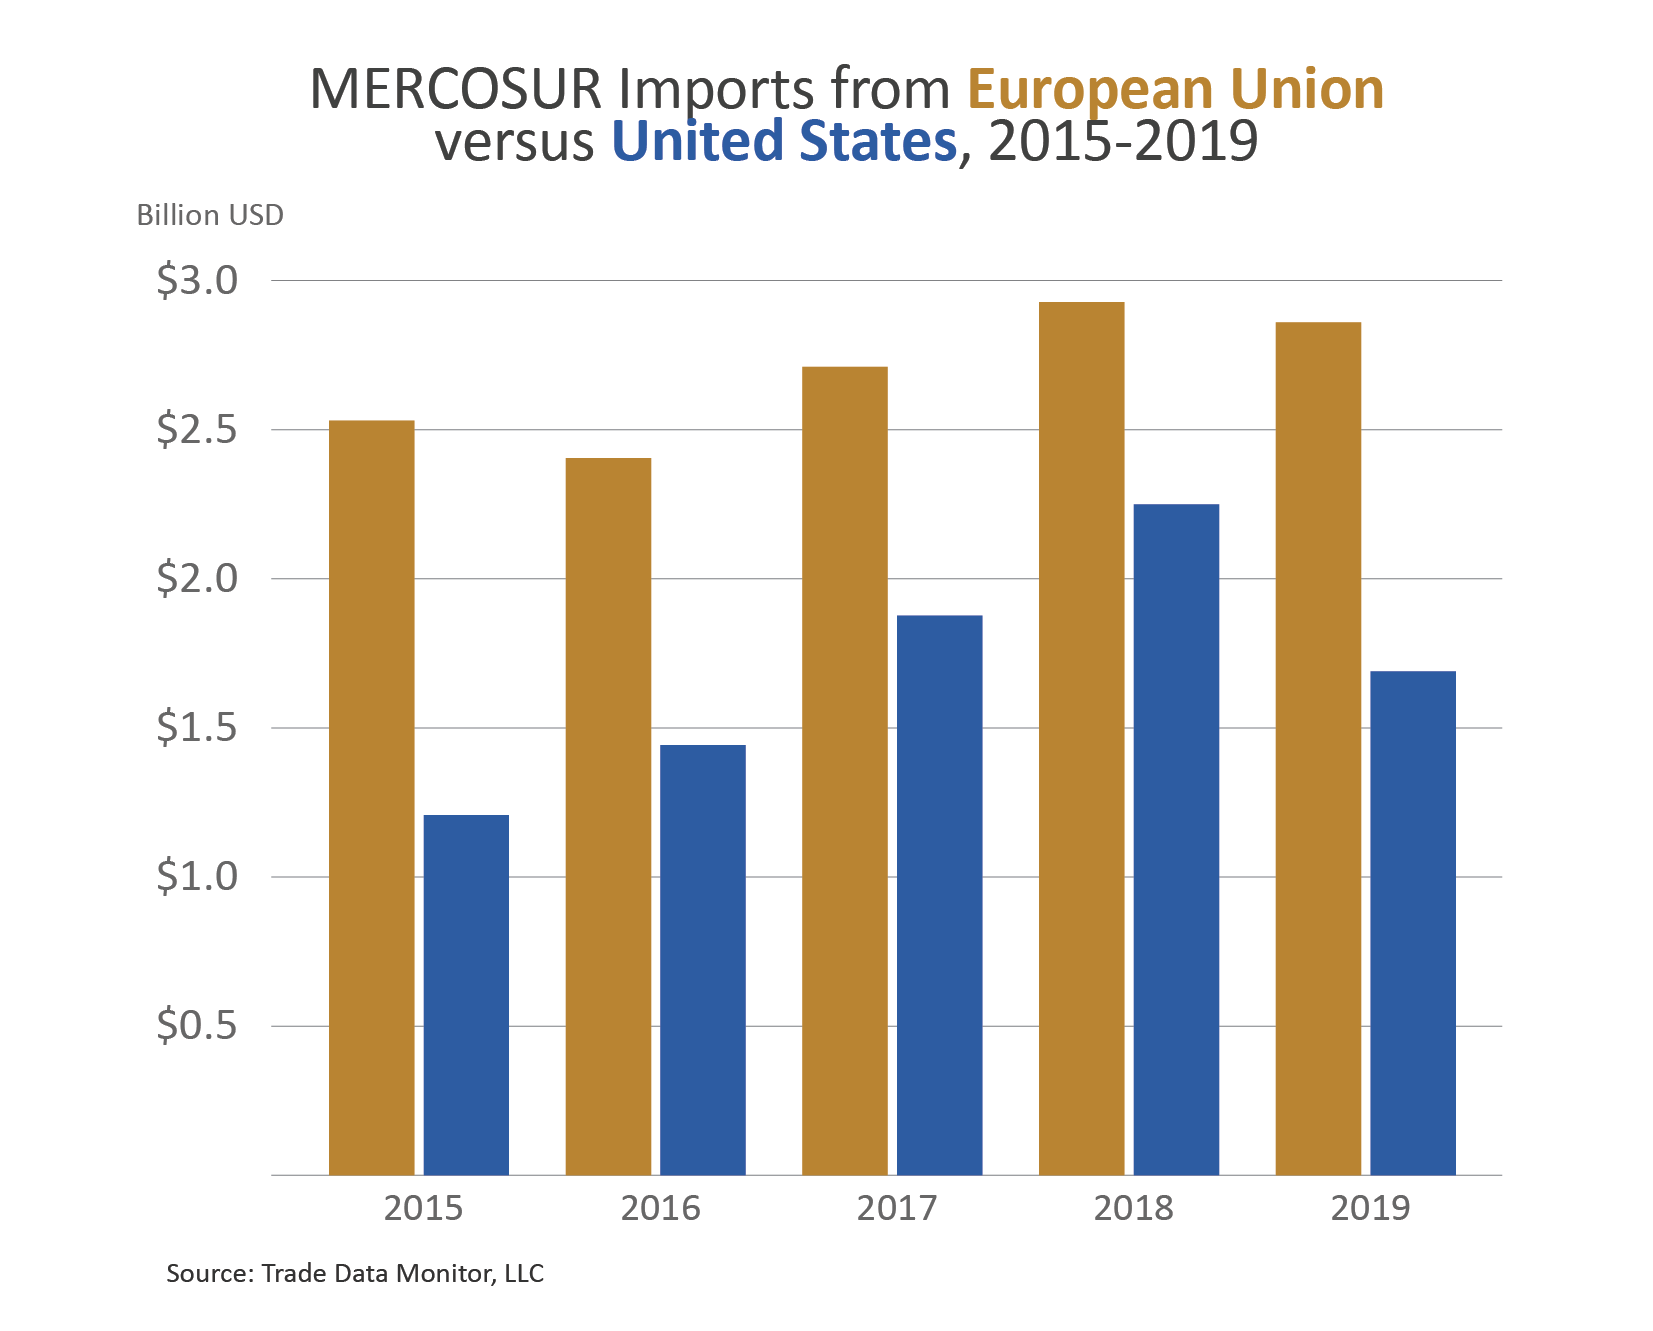 Column chart comparing MERCOSUR imports from the EU vs. the US from 2015-2019